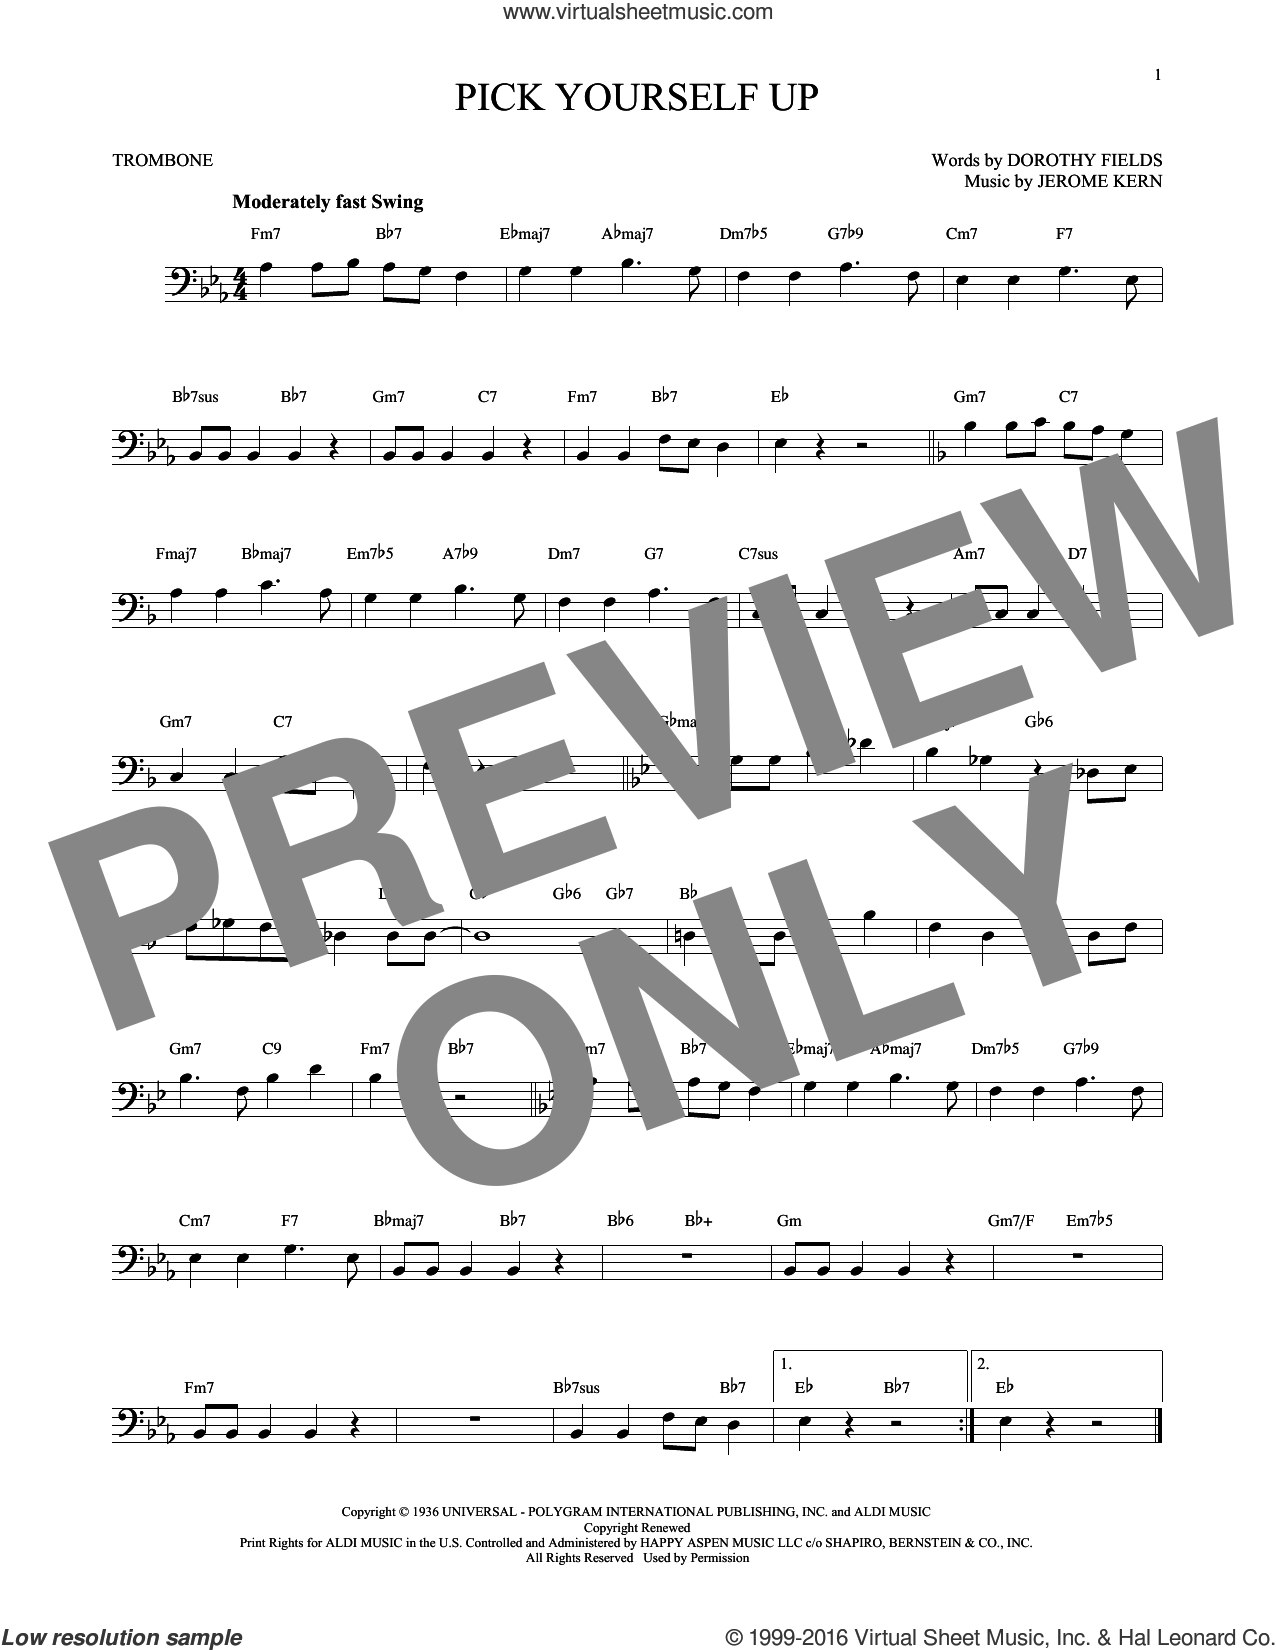 Pick Yourself Up sheet music for trombone solo by Jerome Kern and Dorothy Fields, intermediate skill level